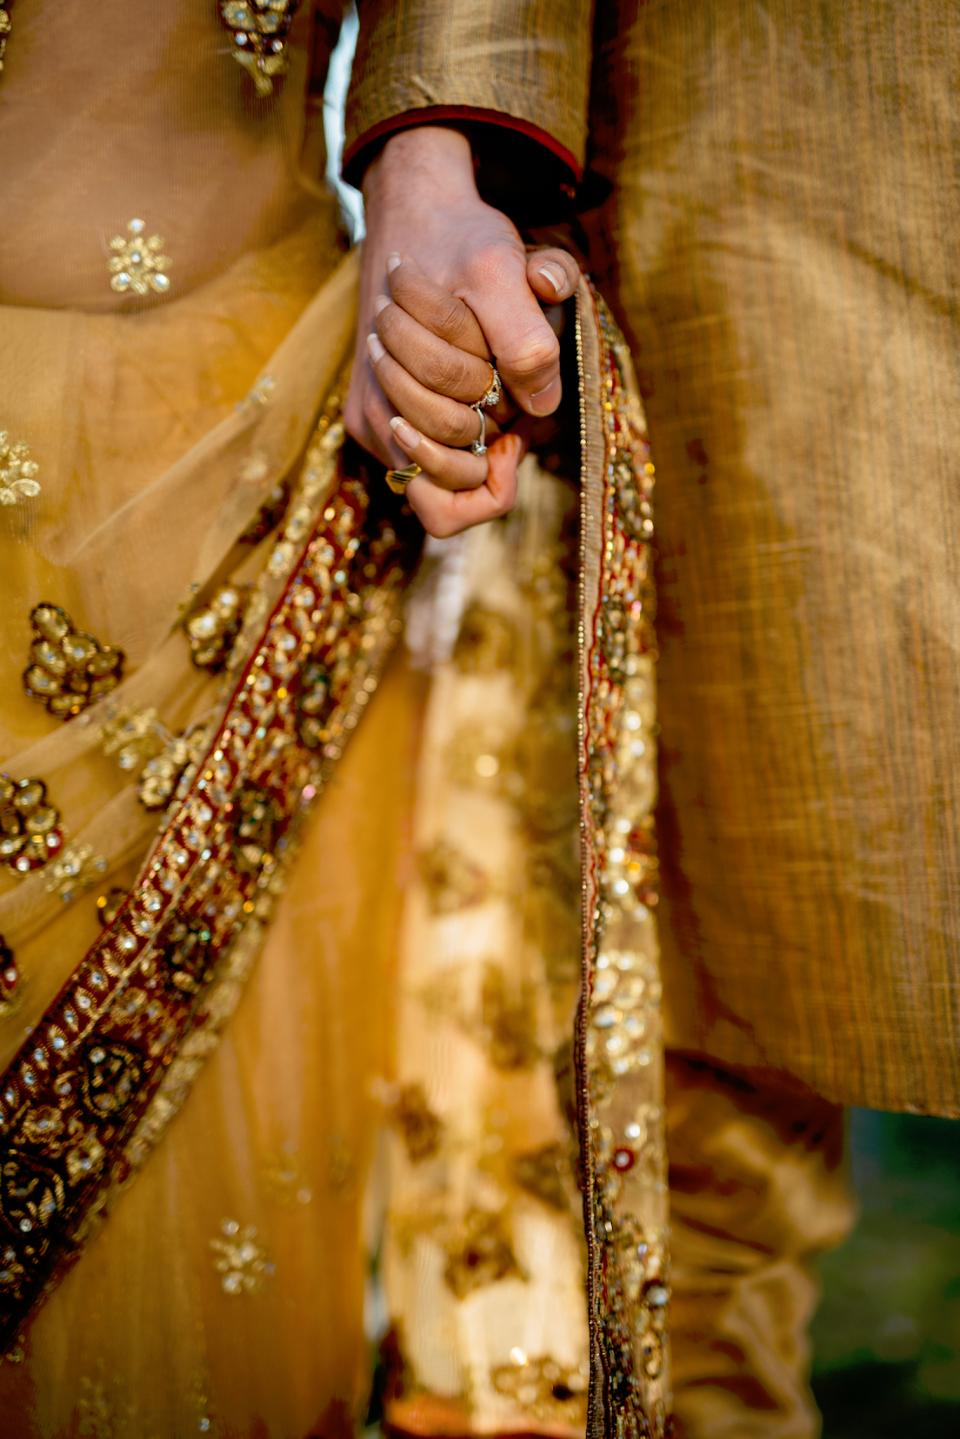 Free stock photo of gold marriage